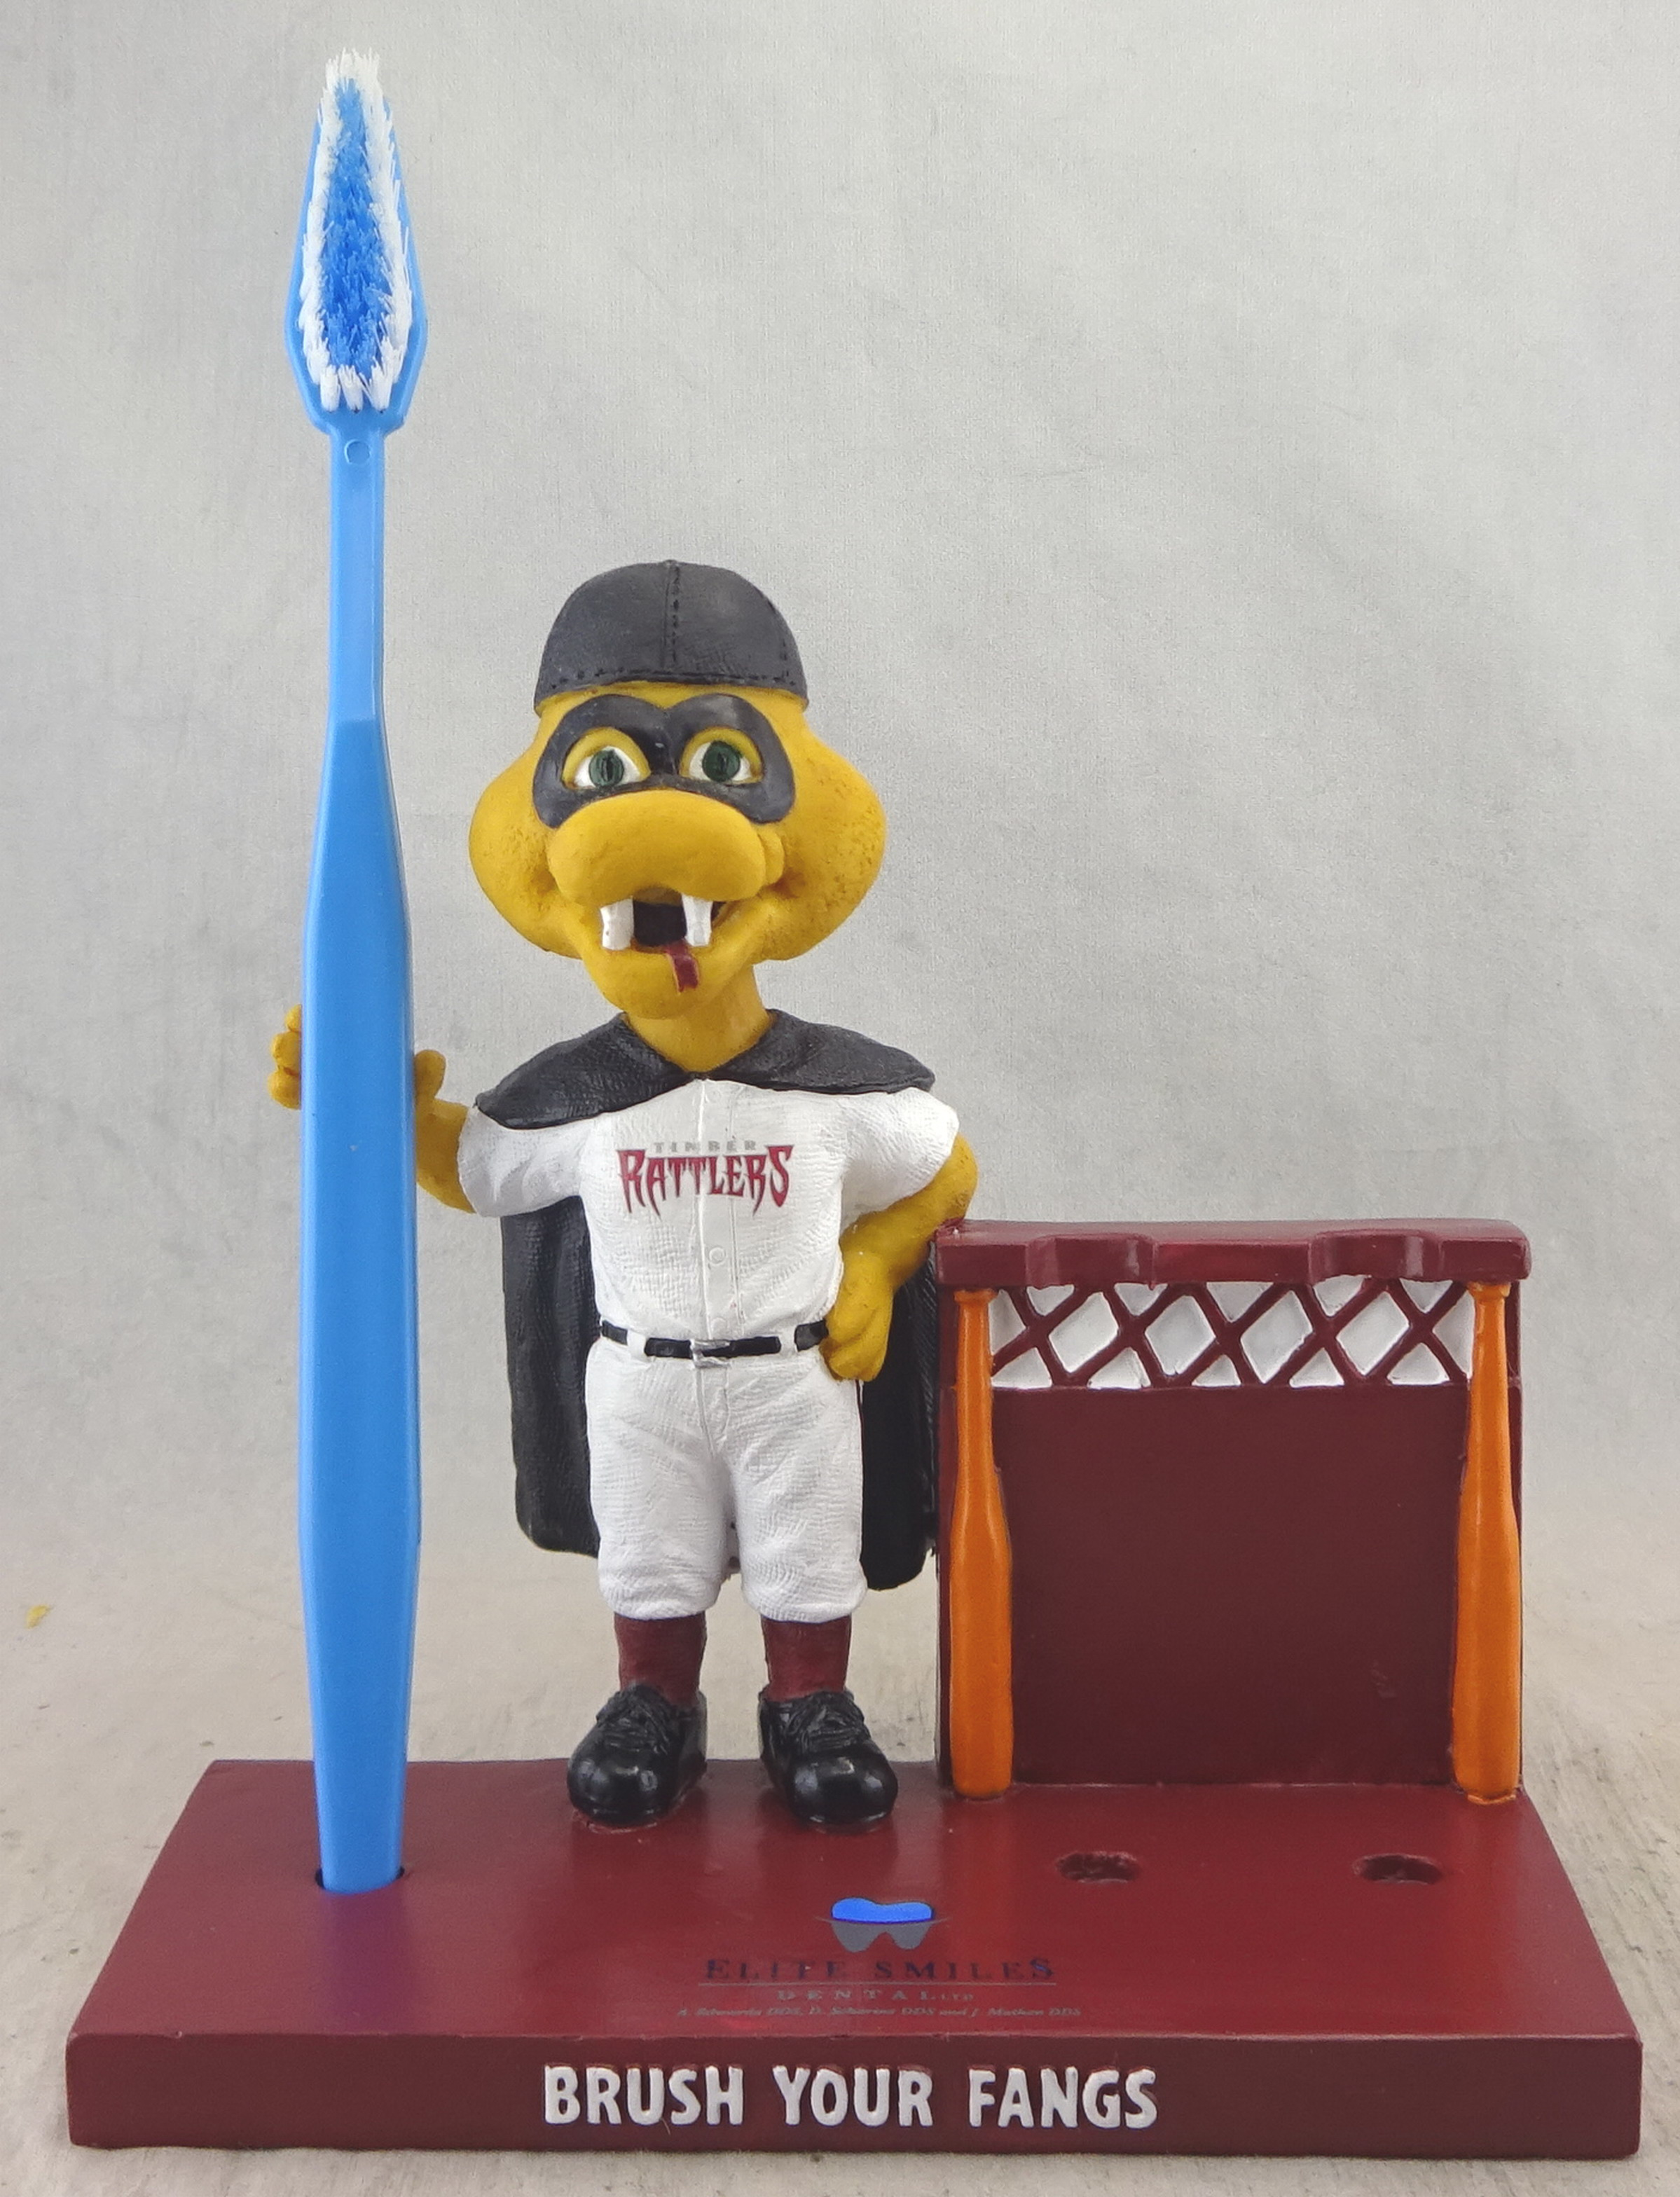 Timber Rattlers, Fang Toothbrush Holder 112765, 5in bobblehead (6).jpg